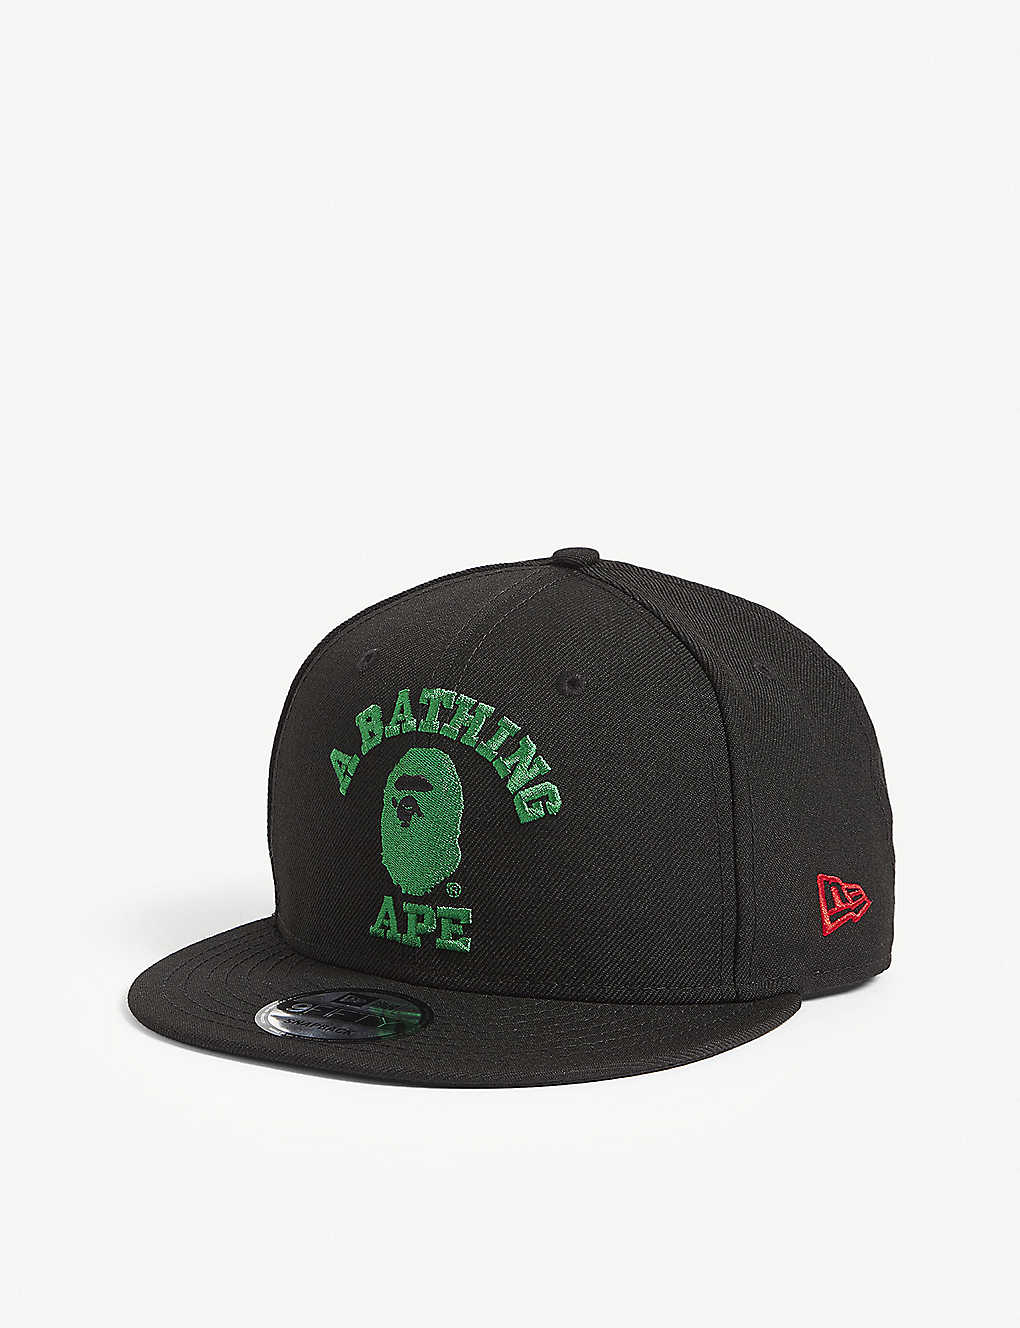 A BATHING APE - New Era embroidered logo wool snapback cap ... 9d482580837